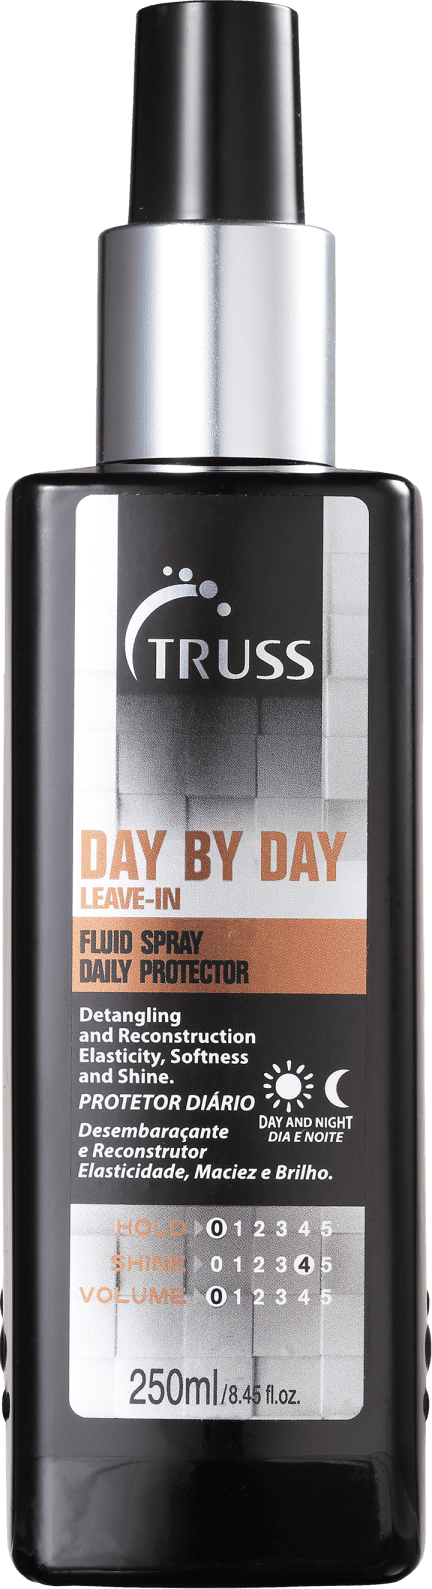 Truss Day by Day - Fluid Spray